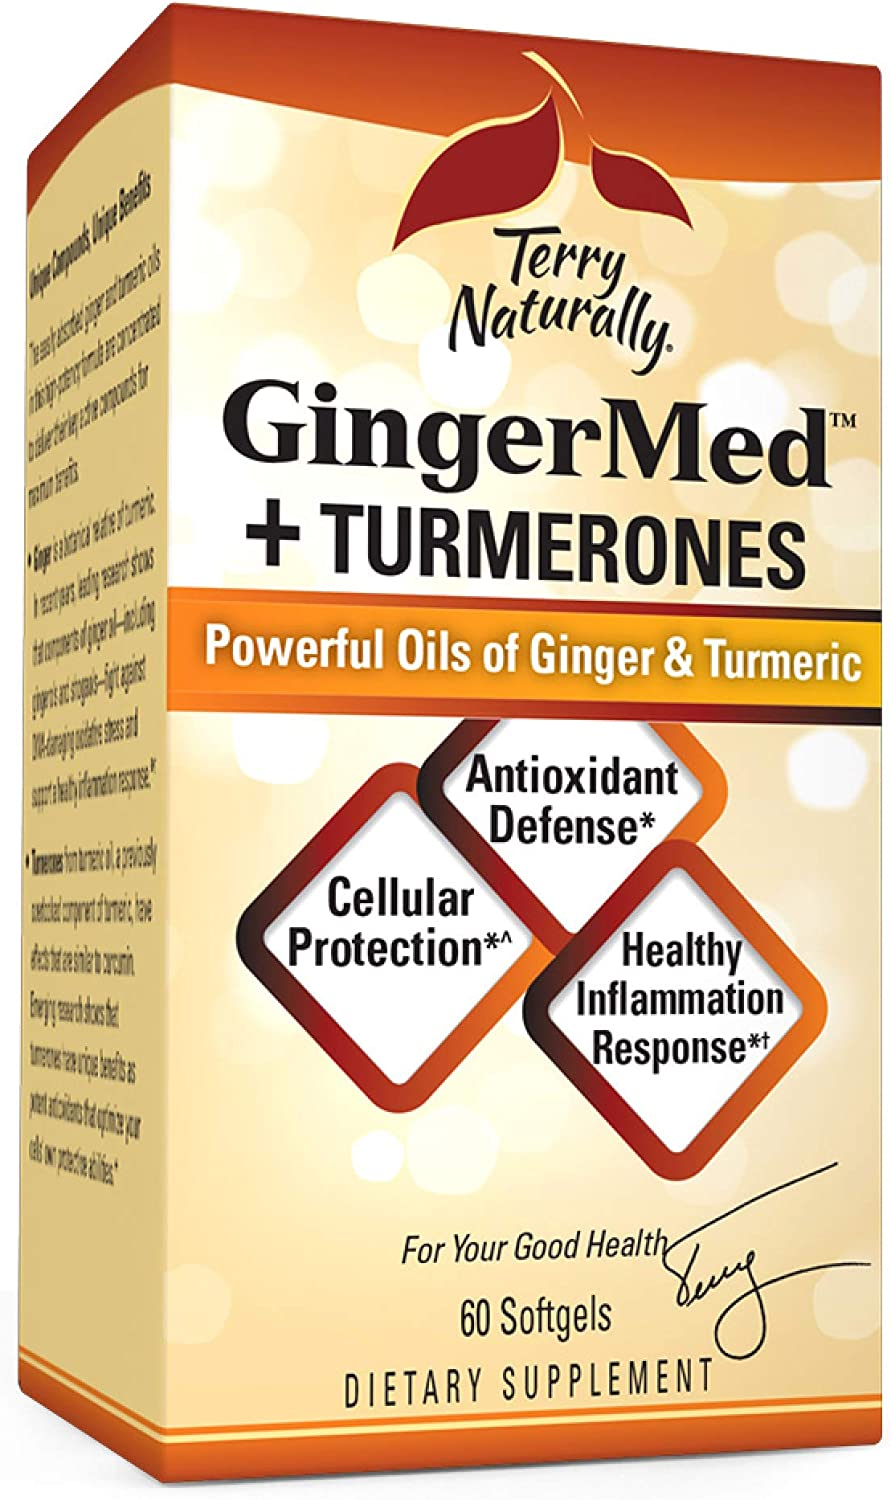 Terry Naturally GingerMed + Turmerones - 60 Softgels - Promotes Healthy Inflammation Response, Cellular Protection & Antioxidant Defense - Non-GMO, Gluten-Free - 60 Servings